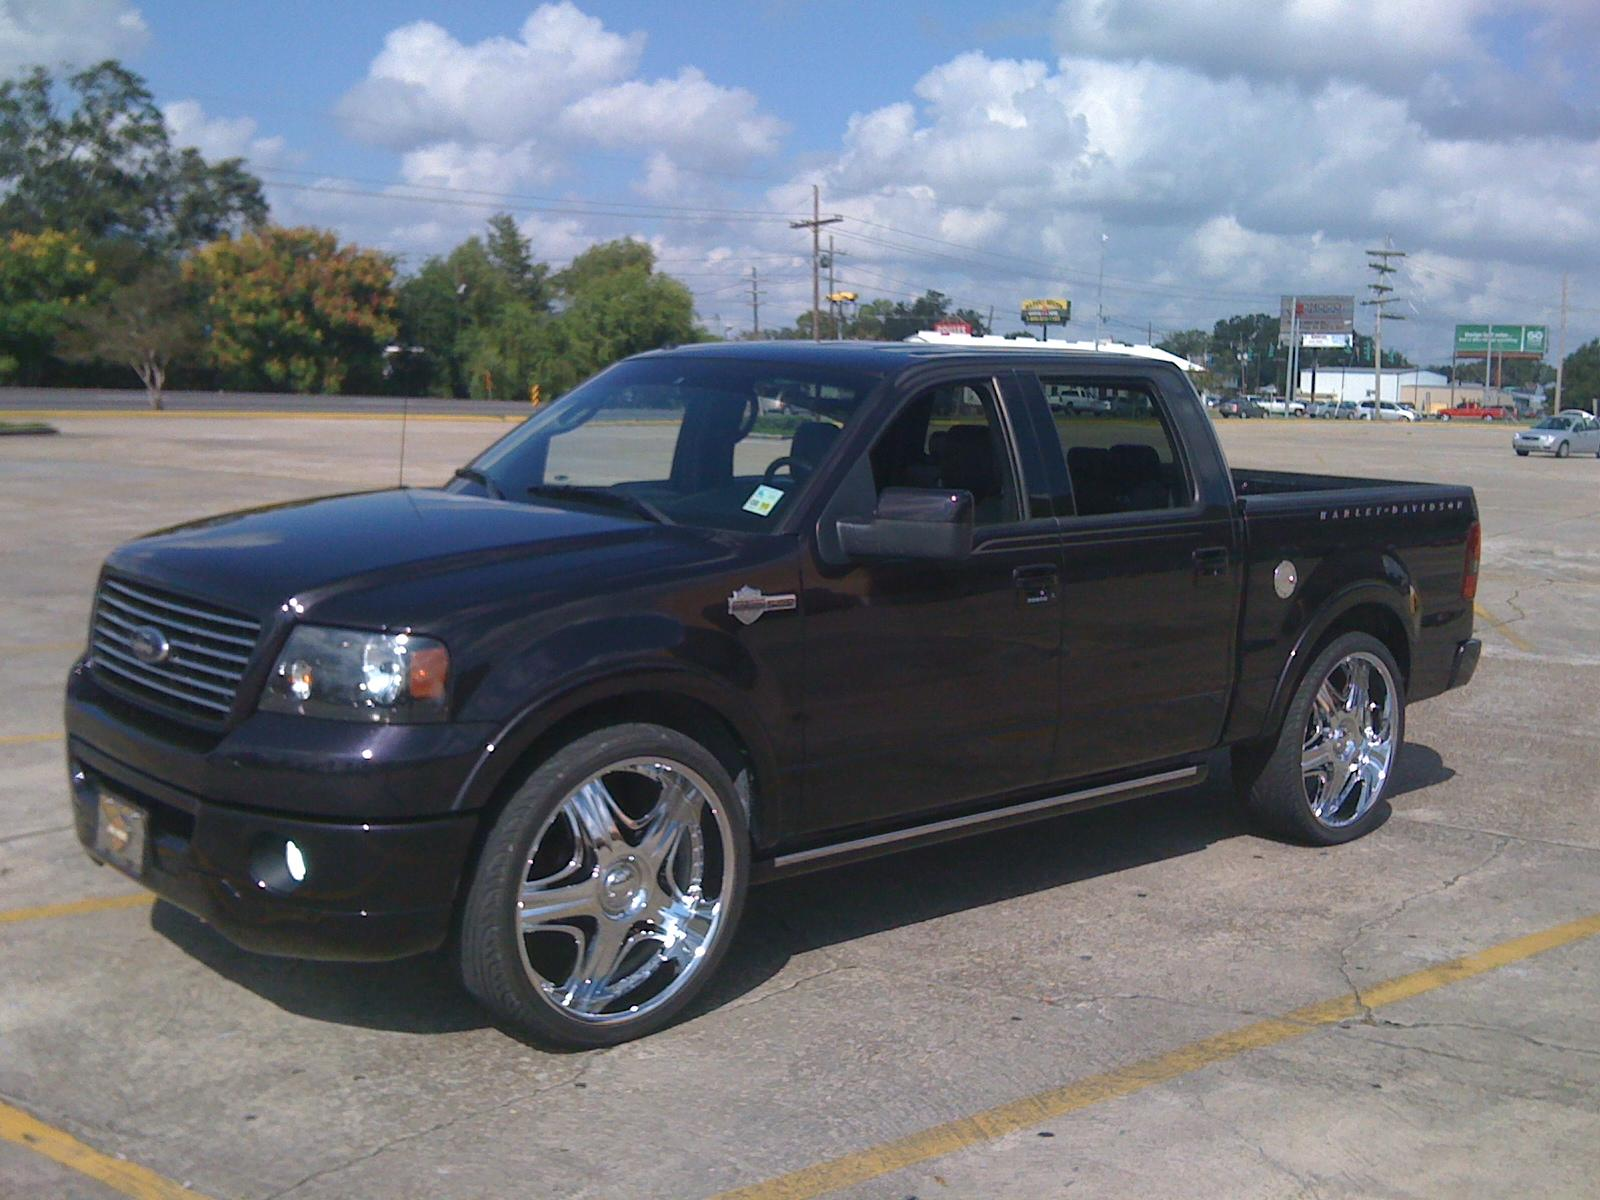 moneyfresh 2007 ford f150 regular cab specs photos modification info at cardomain. Black Bedroom Furniture Sets. Home Design Ideas